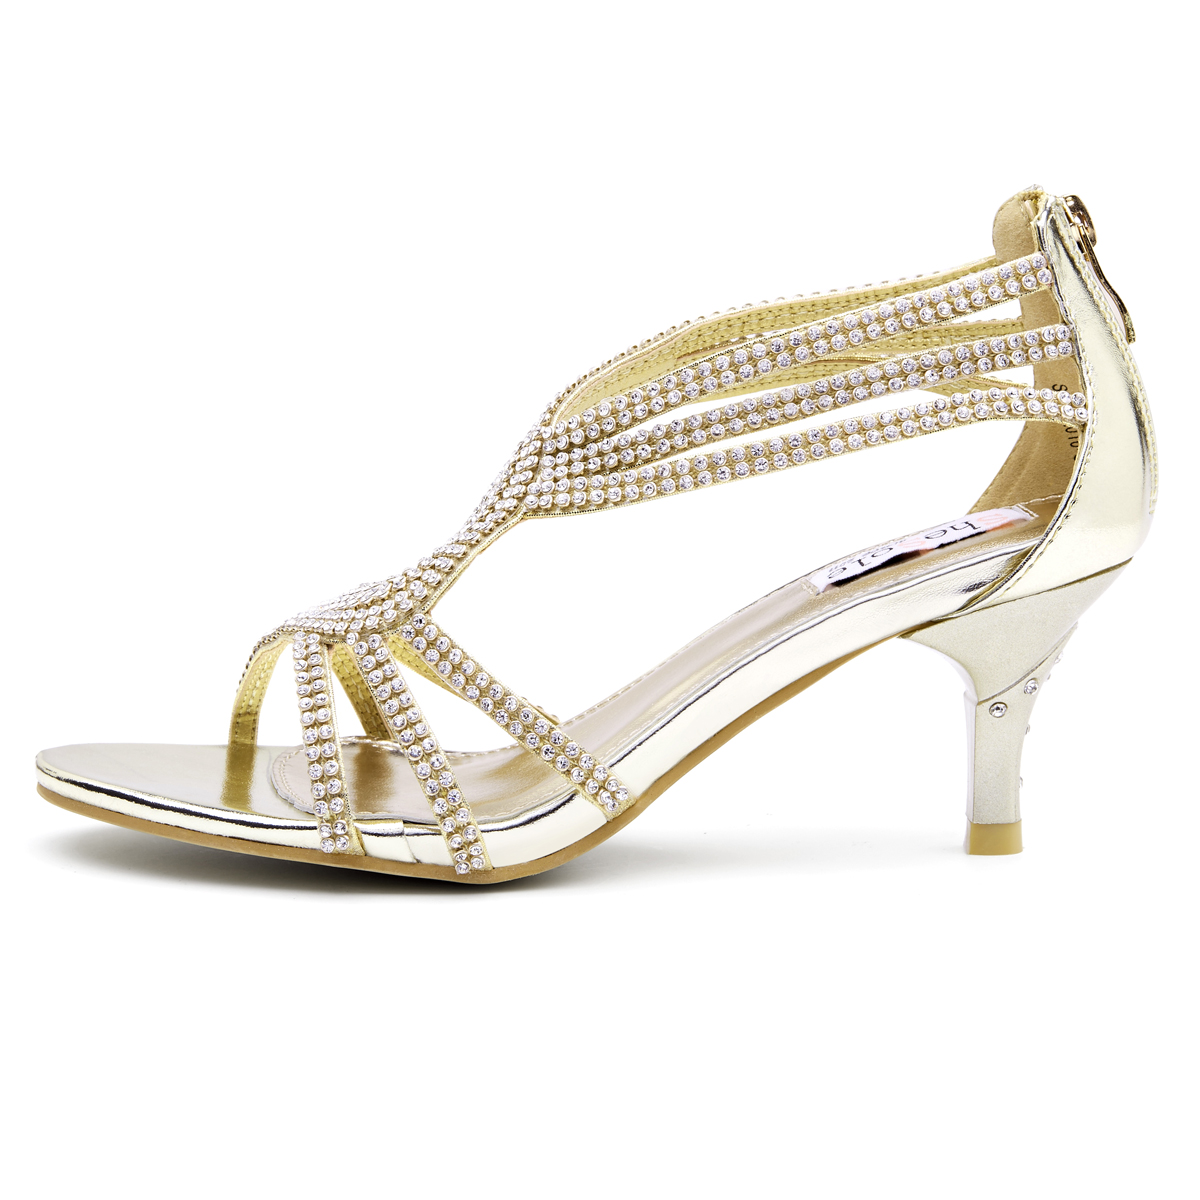 Womens-Ladies-Low-Kitten-Heel-Wedding-Glitter-Sandals-Strappy-Silver-Shoes thumbnail 20